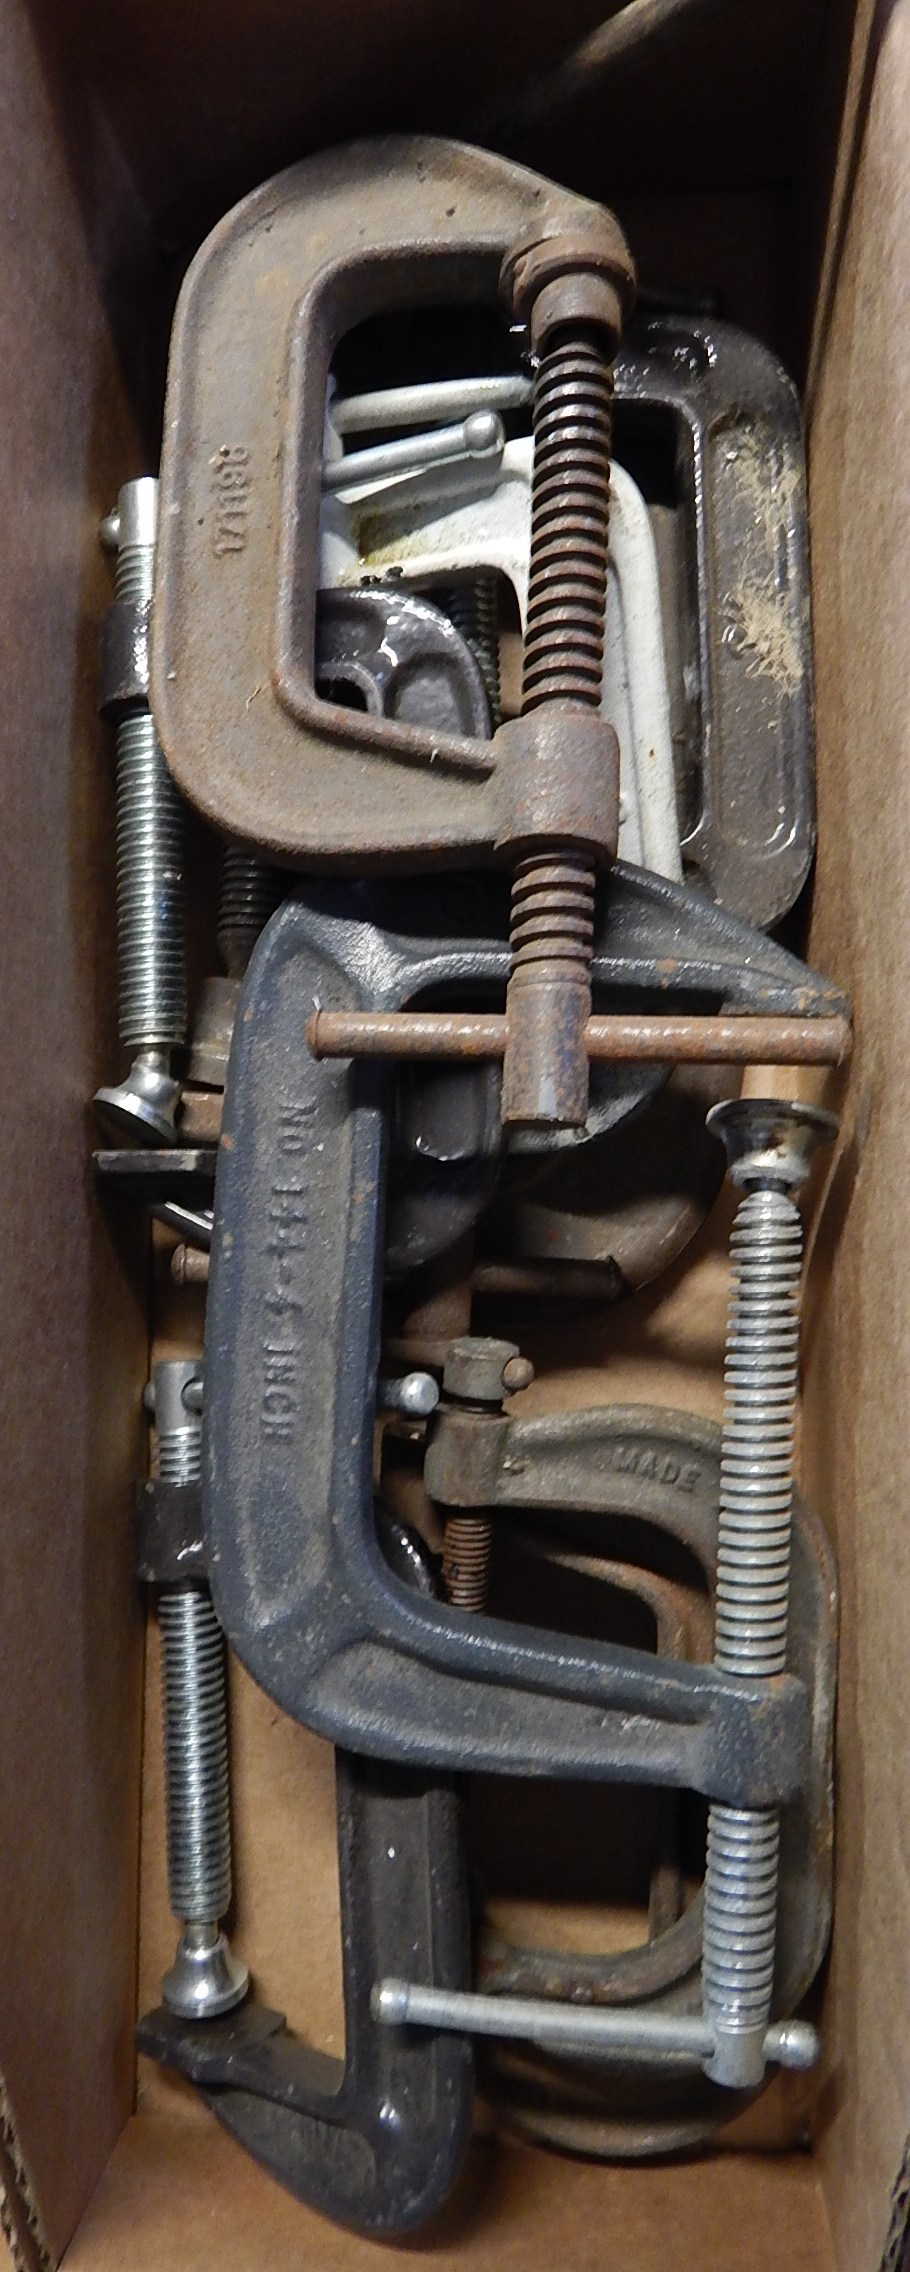 Lot 13 - C-Clamps